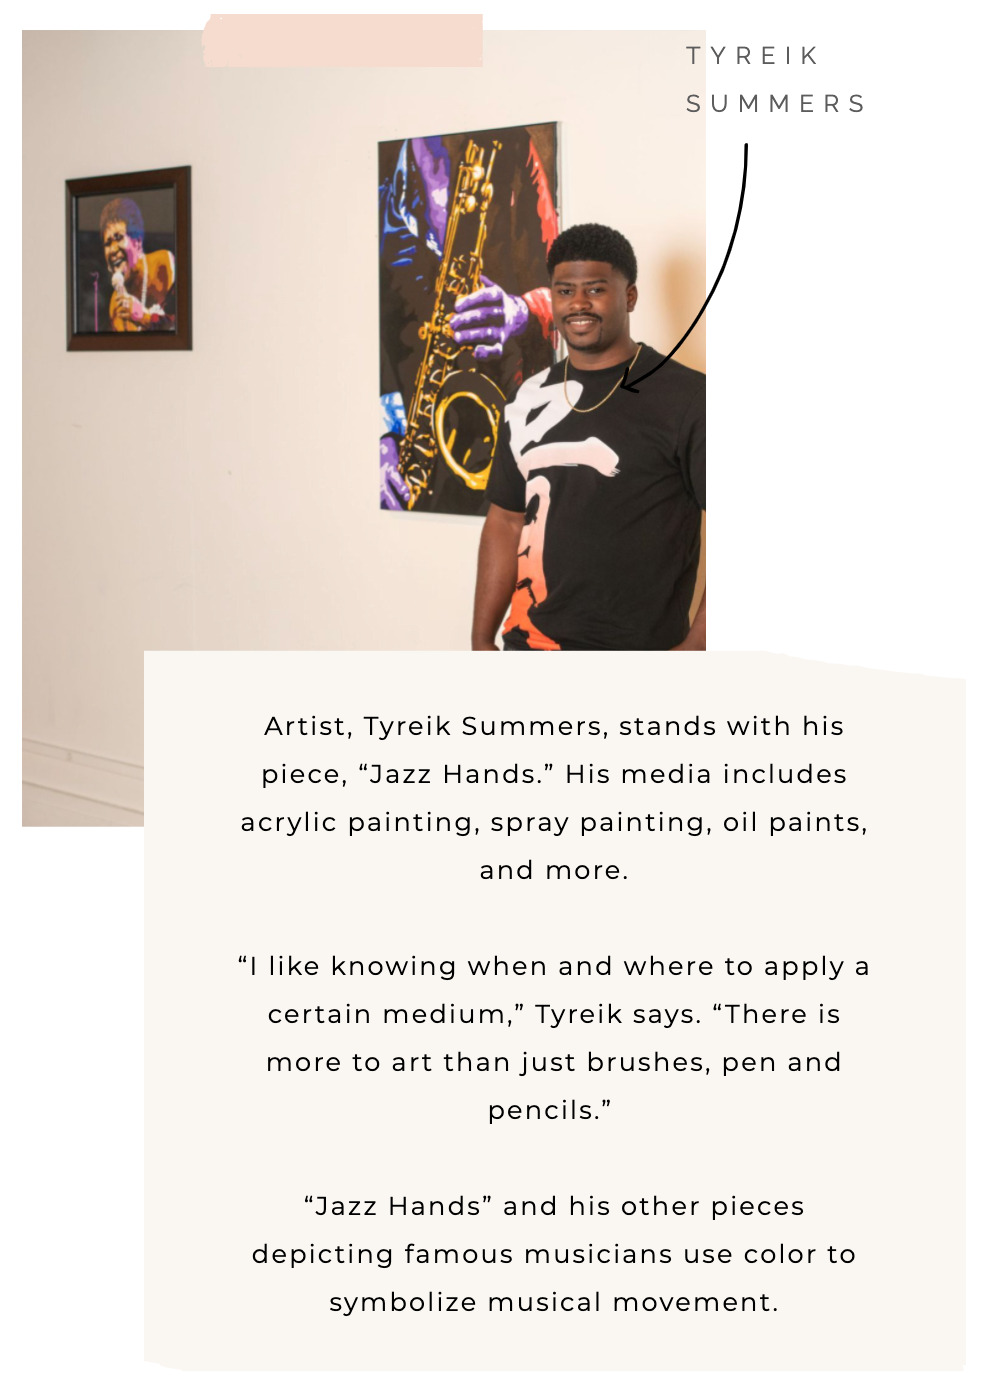 Tyreik Summers, artist in Greensboro, NC, stands with his work at the Gallery on Main in High Point, NC.